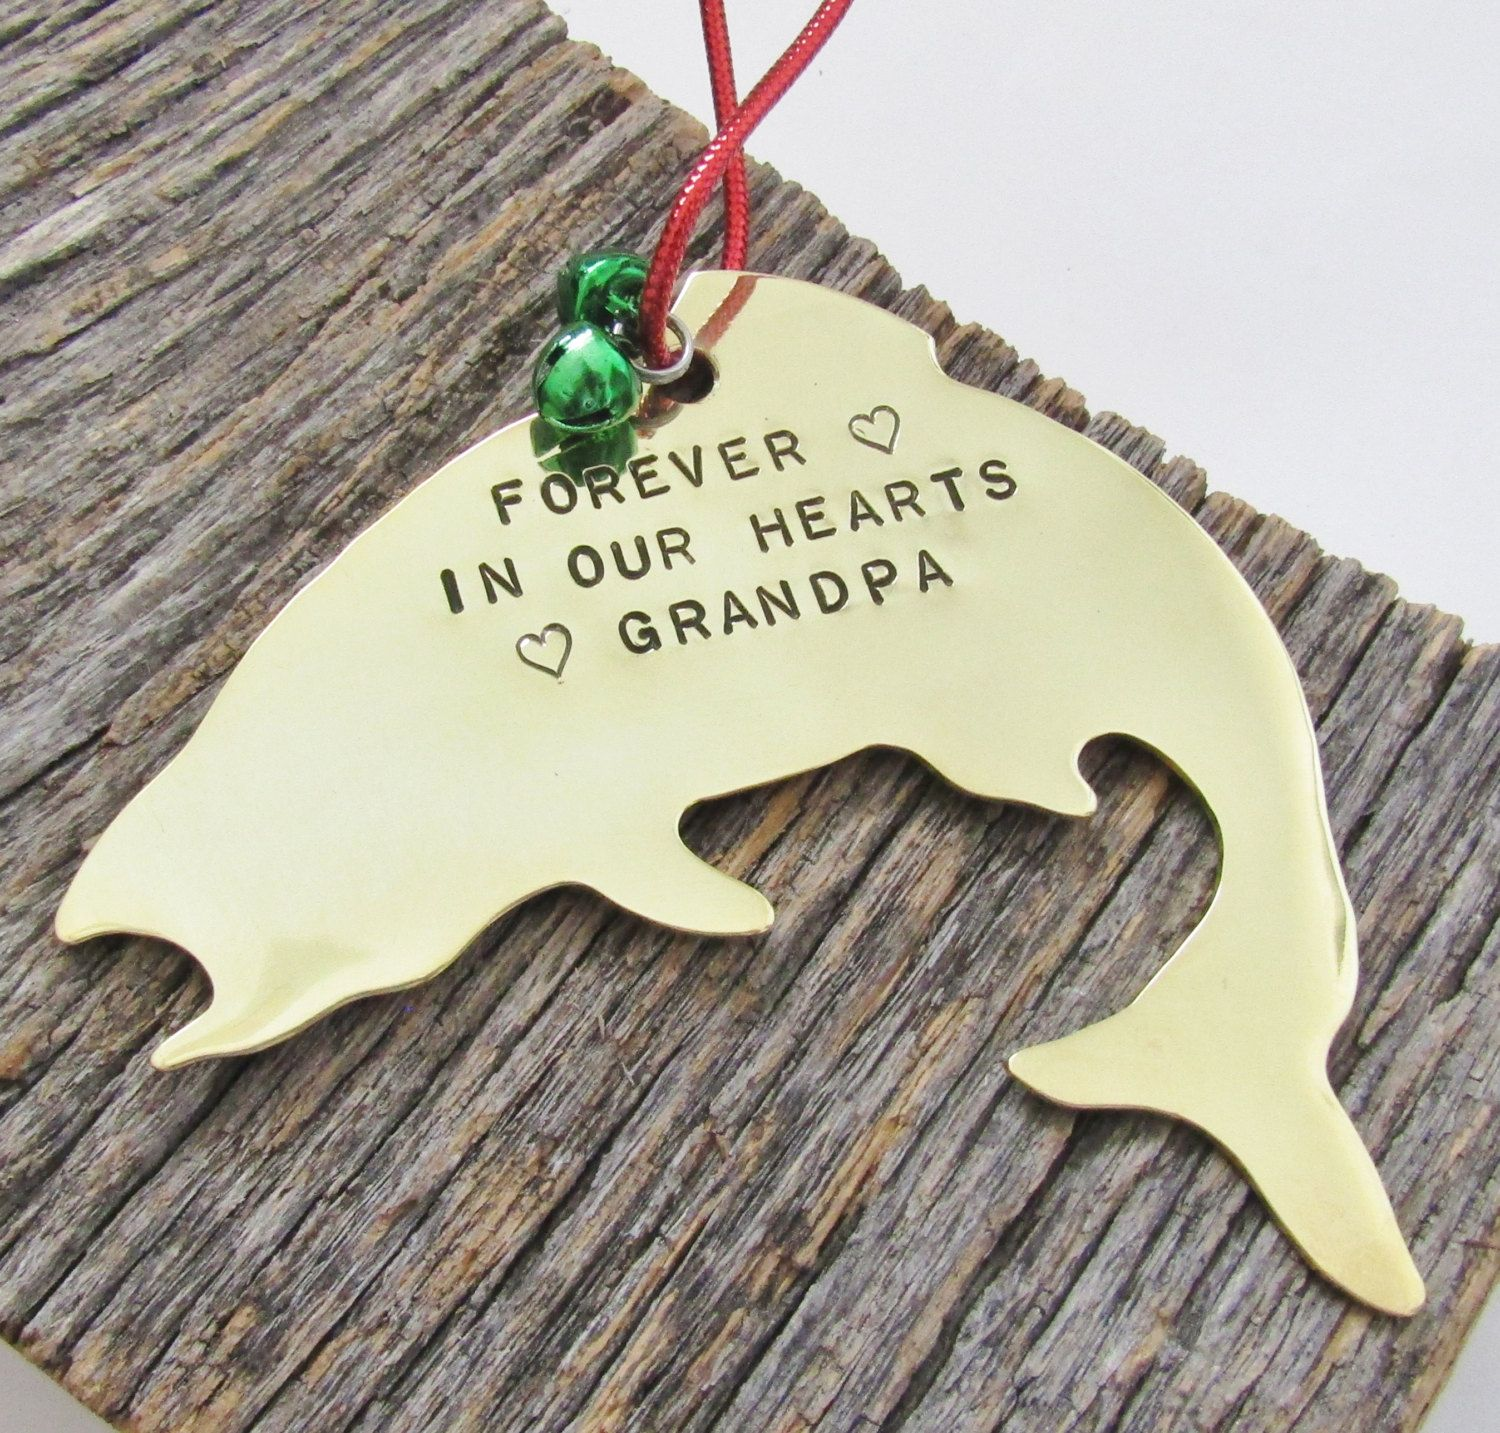 In memory of ornaments - Memorial Ornament Grandpa Fishing Grandfather Remembrance Ornament In Loving Memory Gift Loss Of Mother Child Father Forever In Our Heart